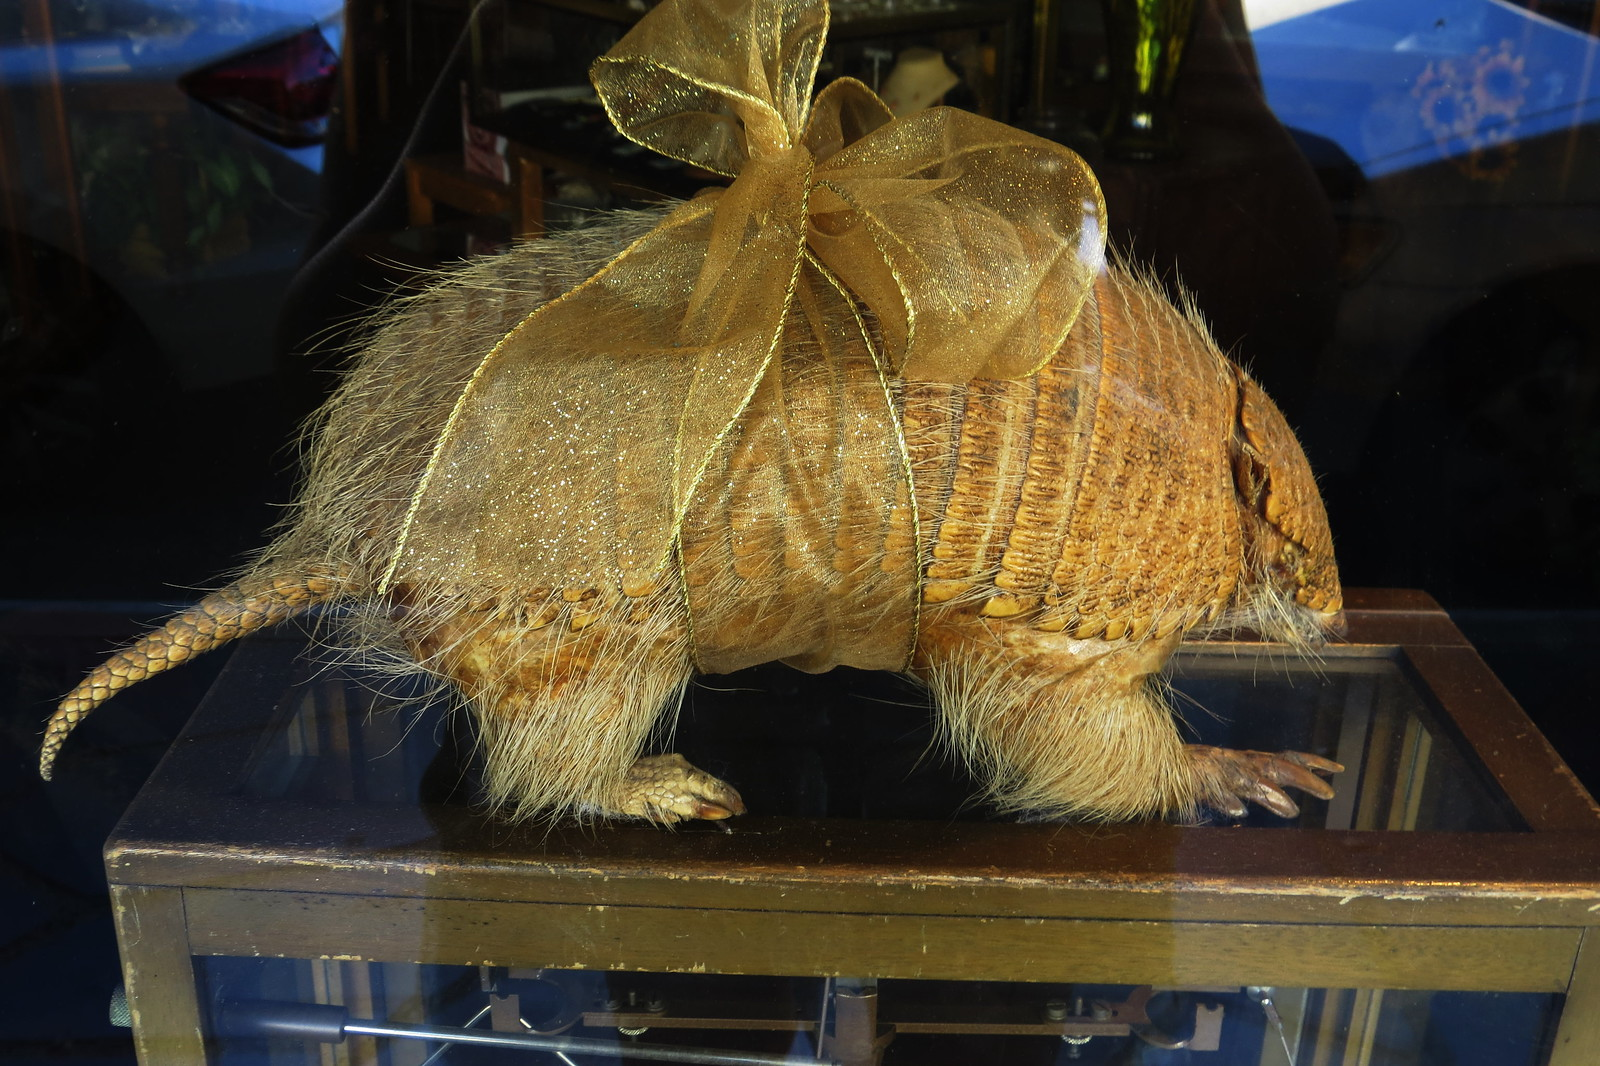 Armadillo, Mariposa, California